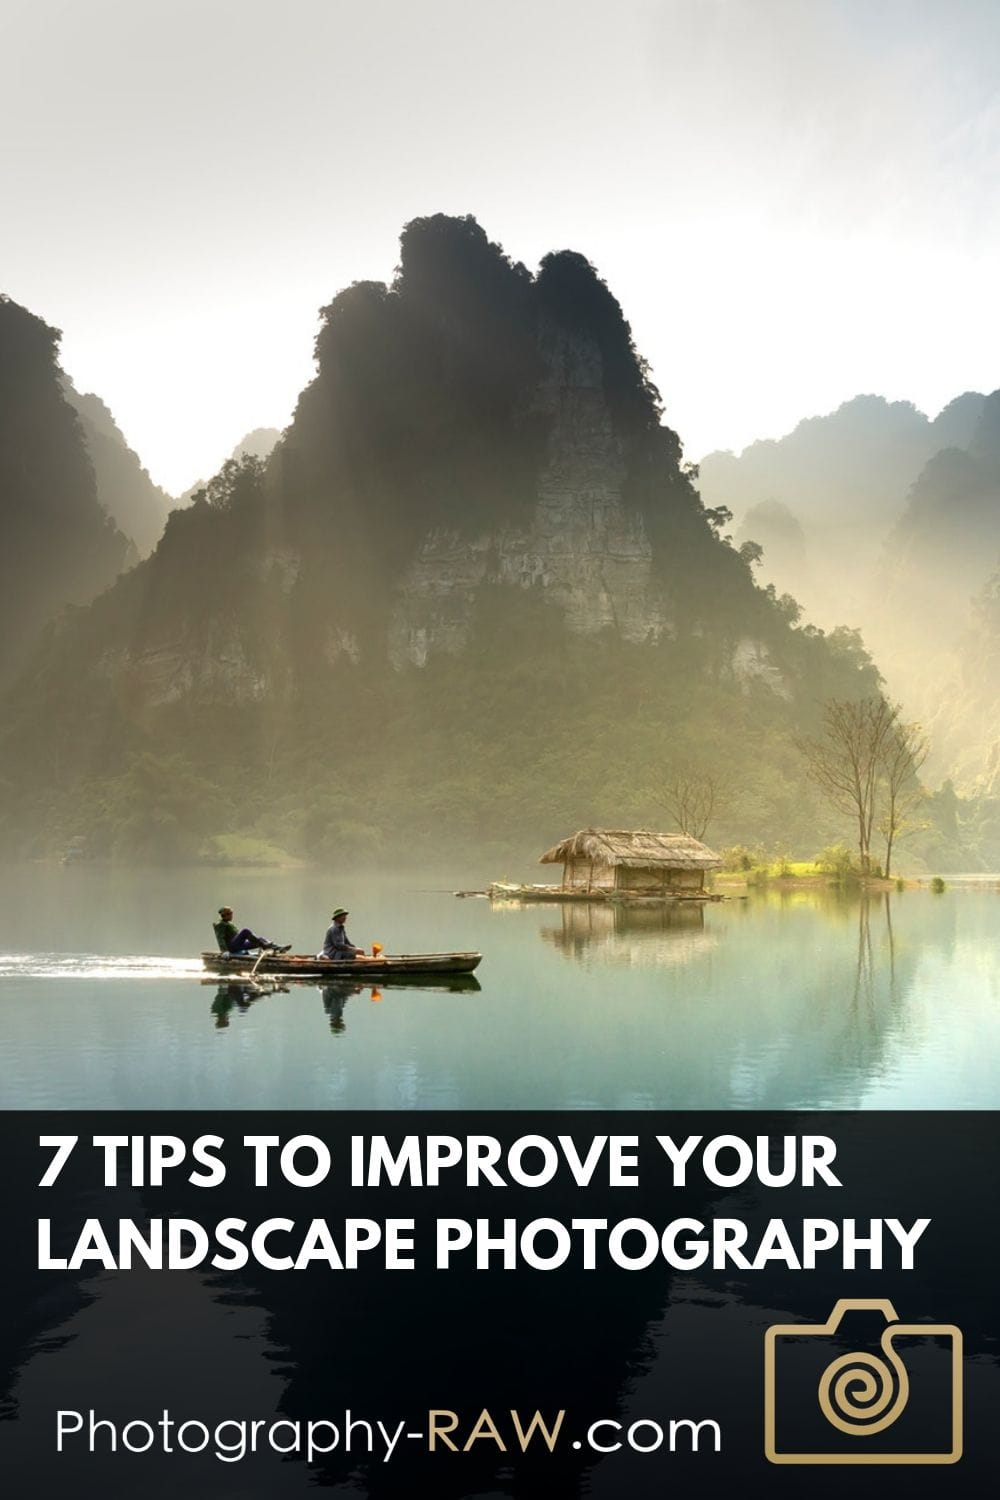 7 Tips To Improve Your Landscape Photography